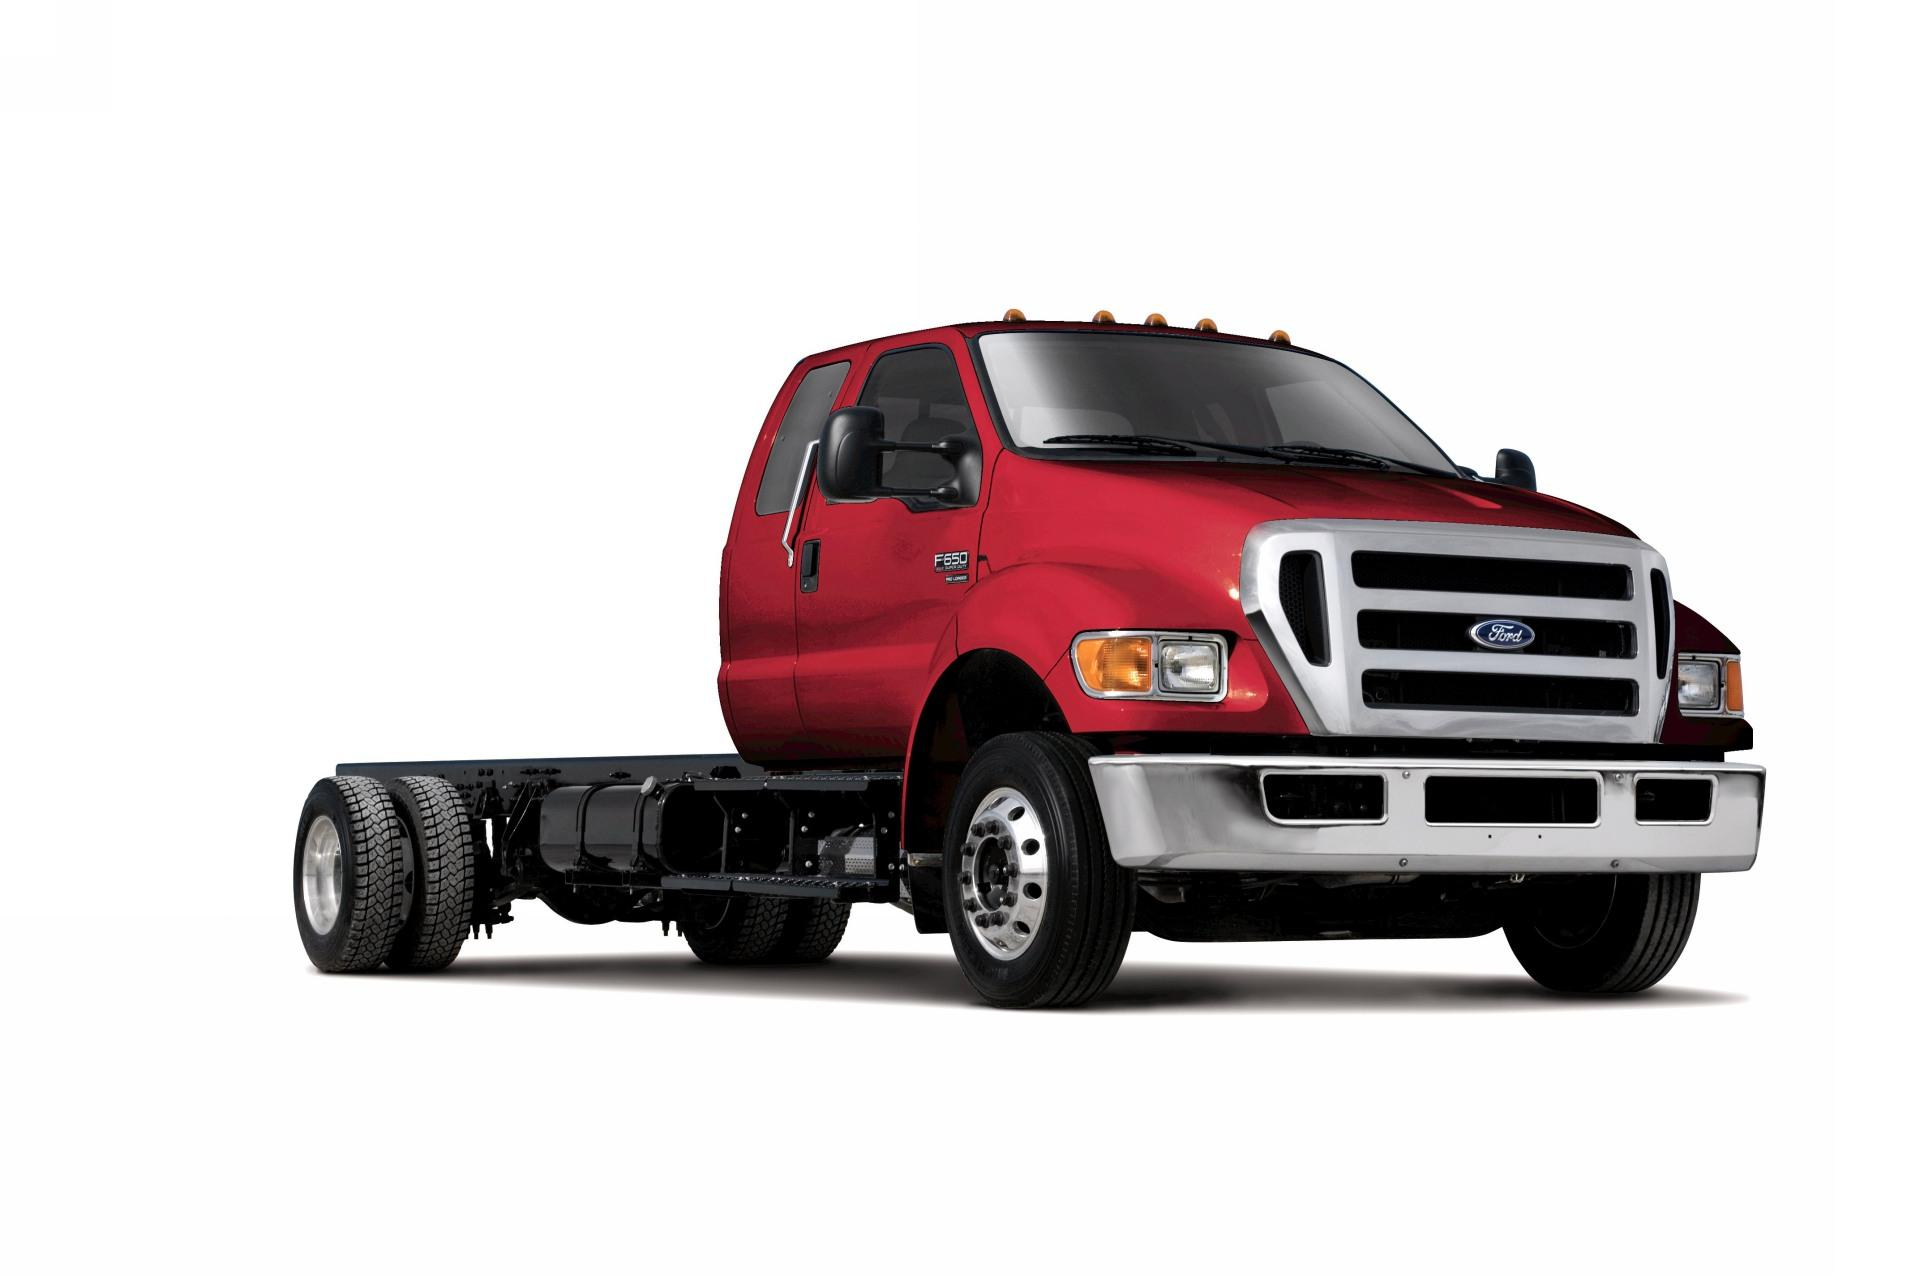 2009 ford f650 technical specifications and data engine dimensions and mechanical details. Black Bedroom Furniture Sets. Home Design Ideas